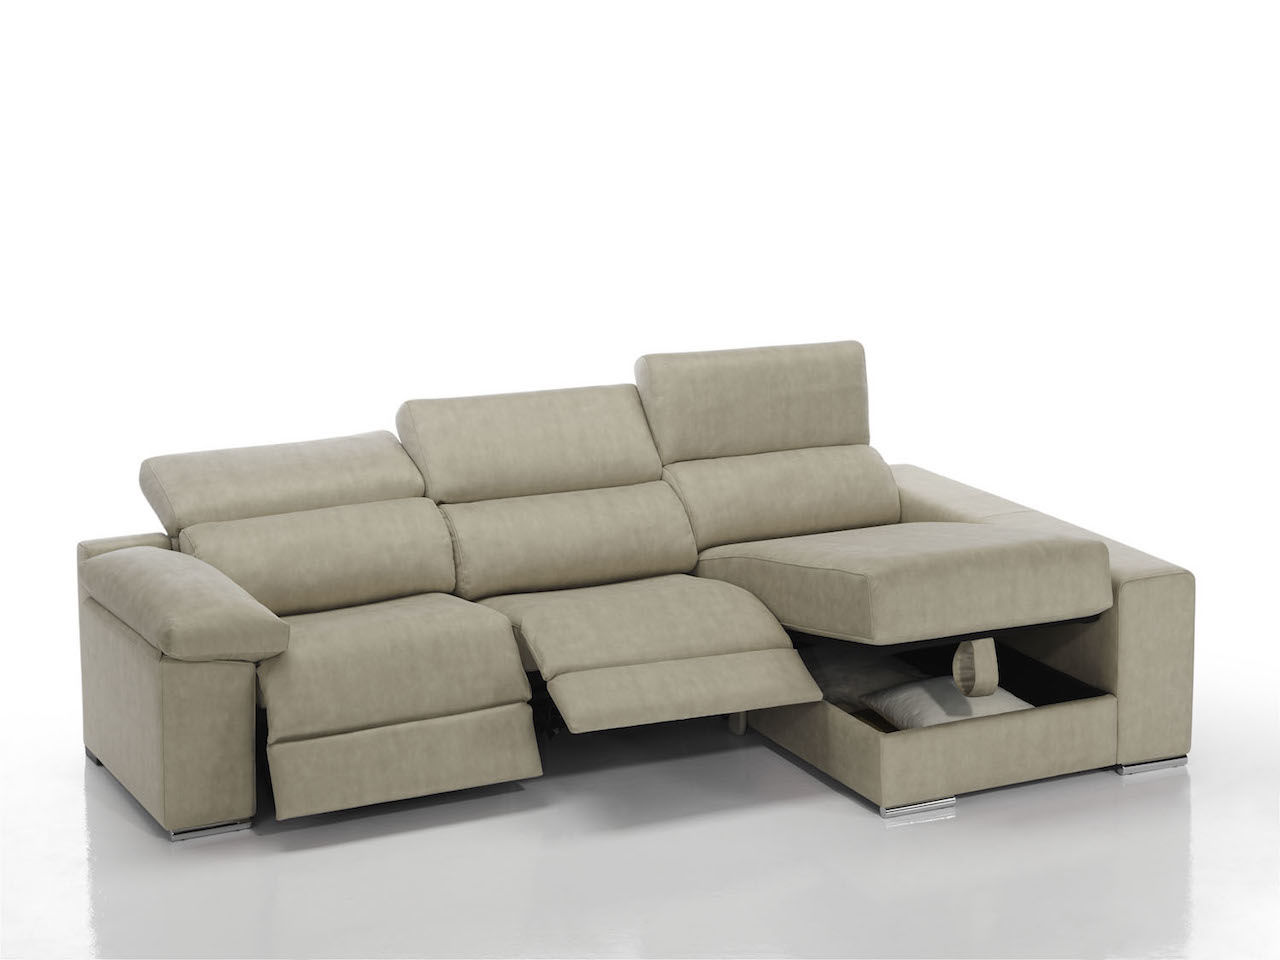 superb used sectional sofas online-Cute Used Sectional sofas Photo